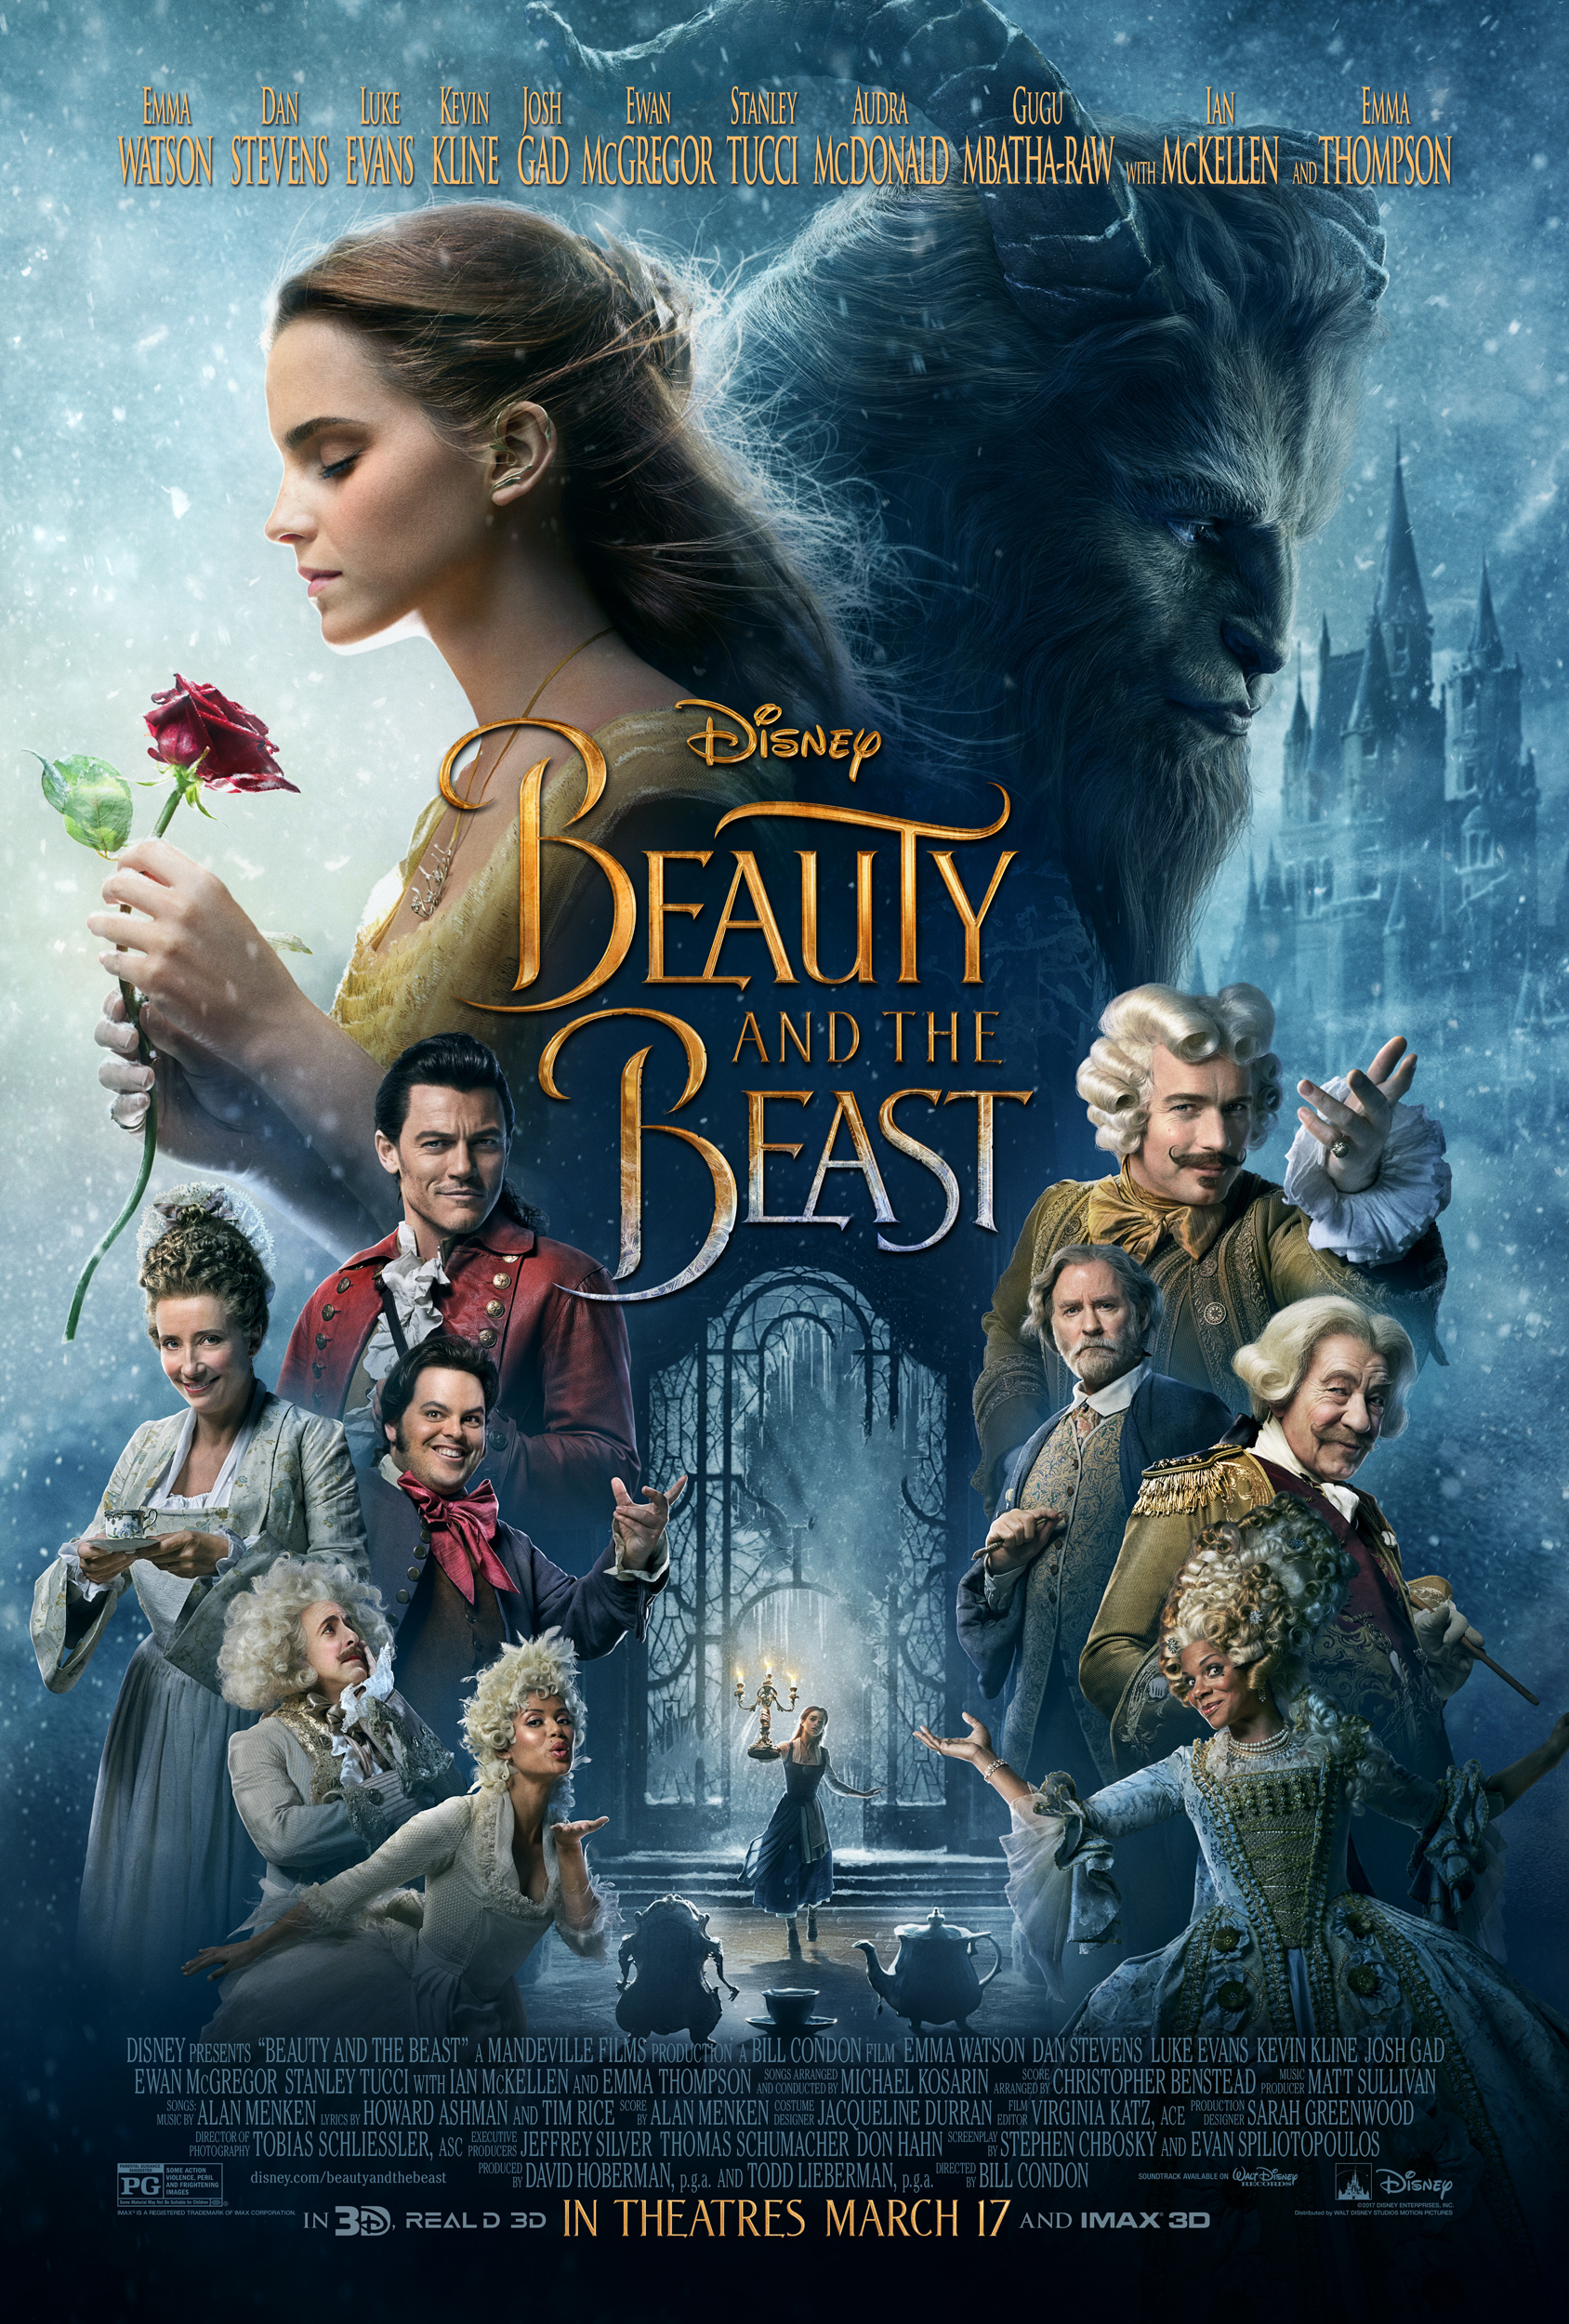 Beauty and the Beast (2017 film) | Disney Wiki | FANDOM powered by Wikia